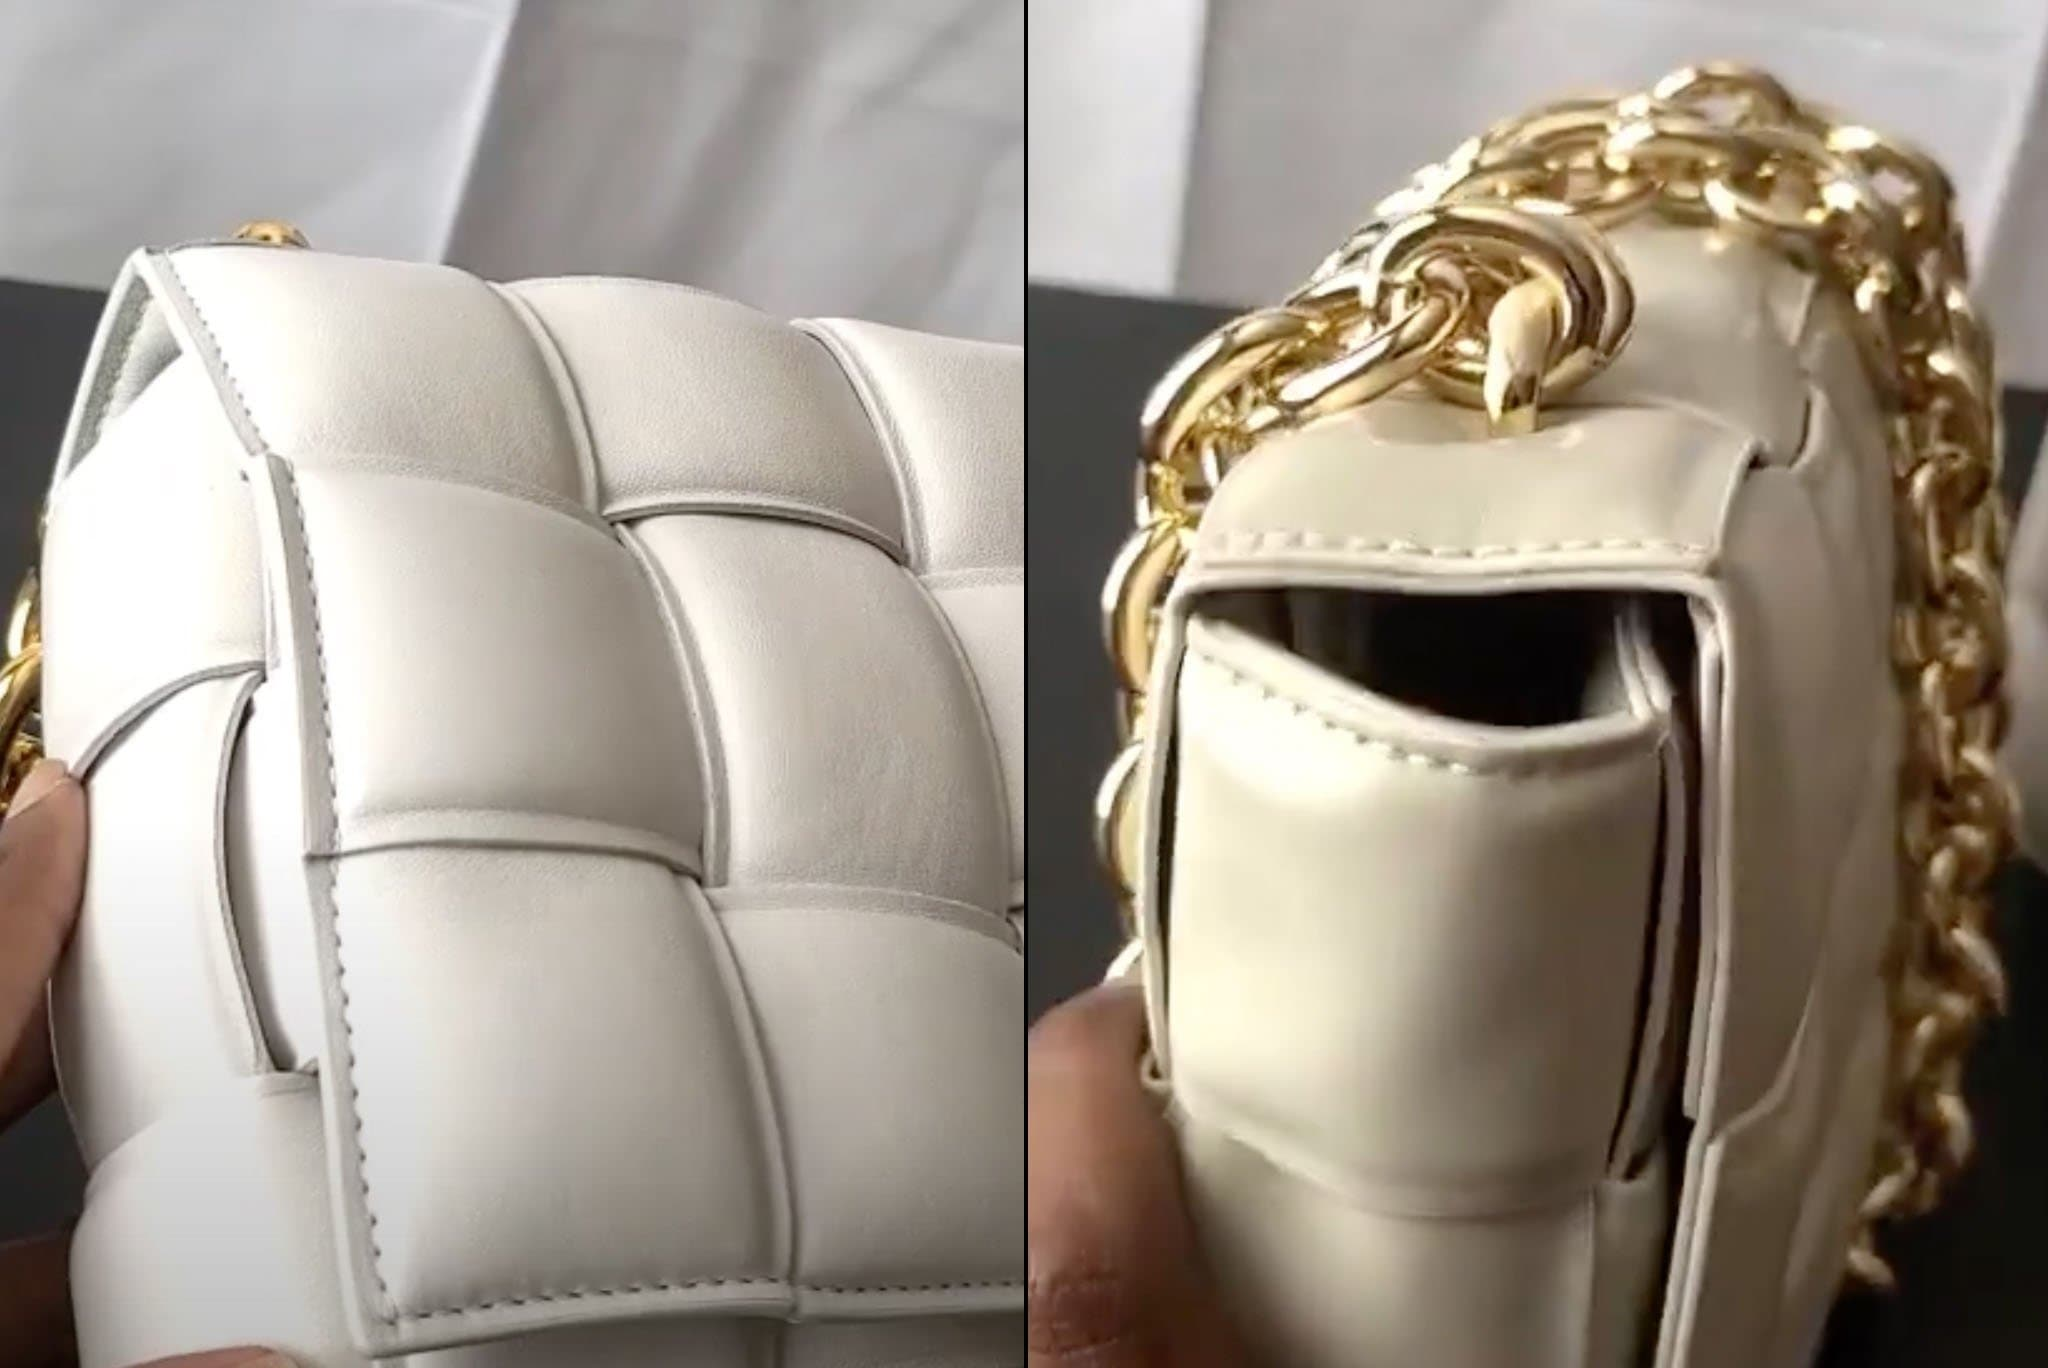 Stitchings on a real Bottega Veneta bag (left) look more neat and seamless compared to the stitchings on a fake Bottega Veneta bag (right)